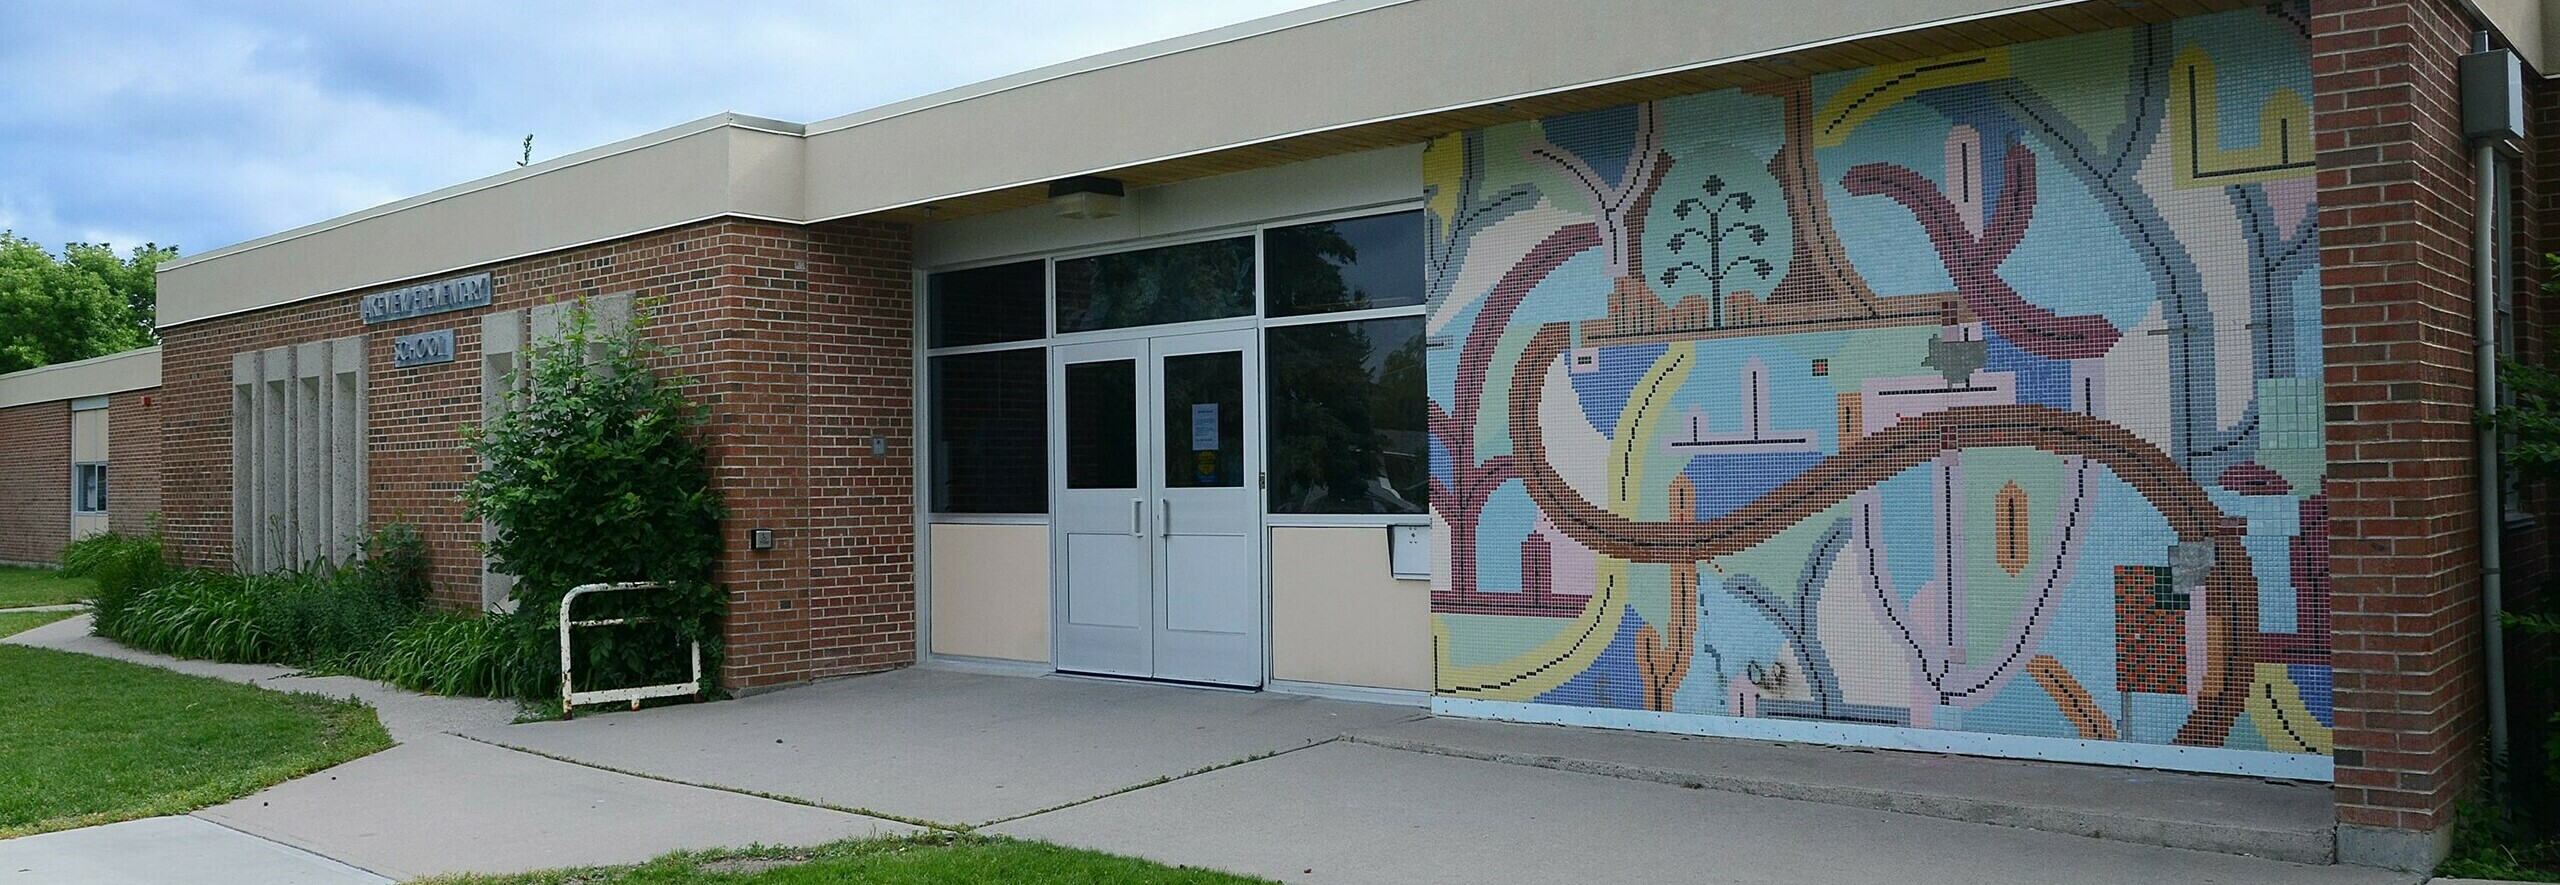 Lakeview Elementary School Banner Photo